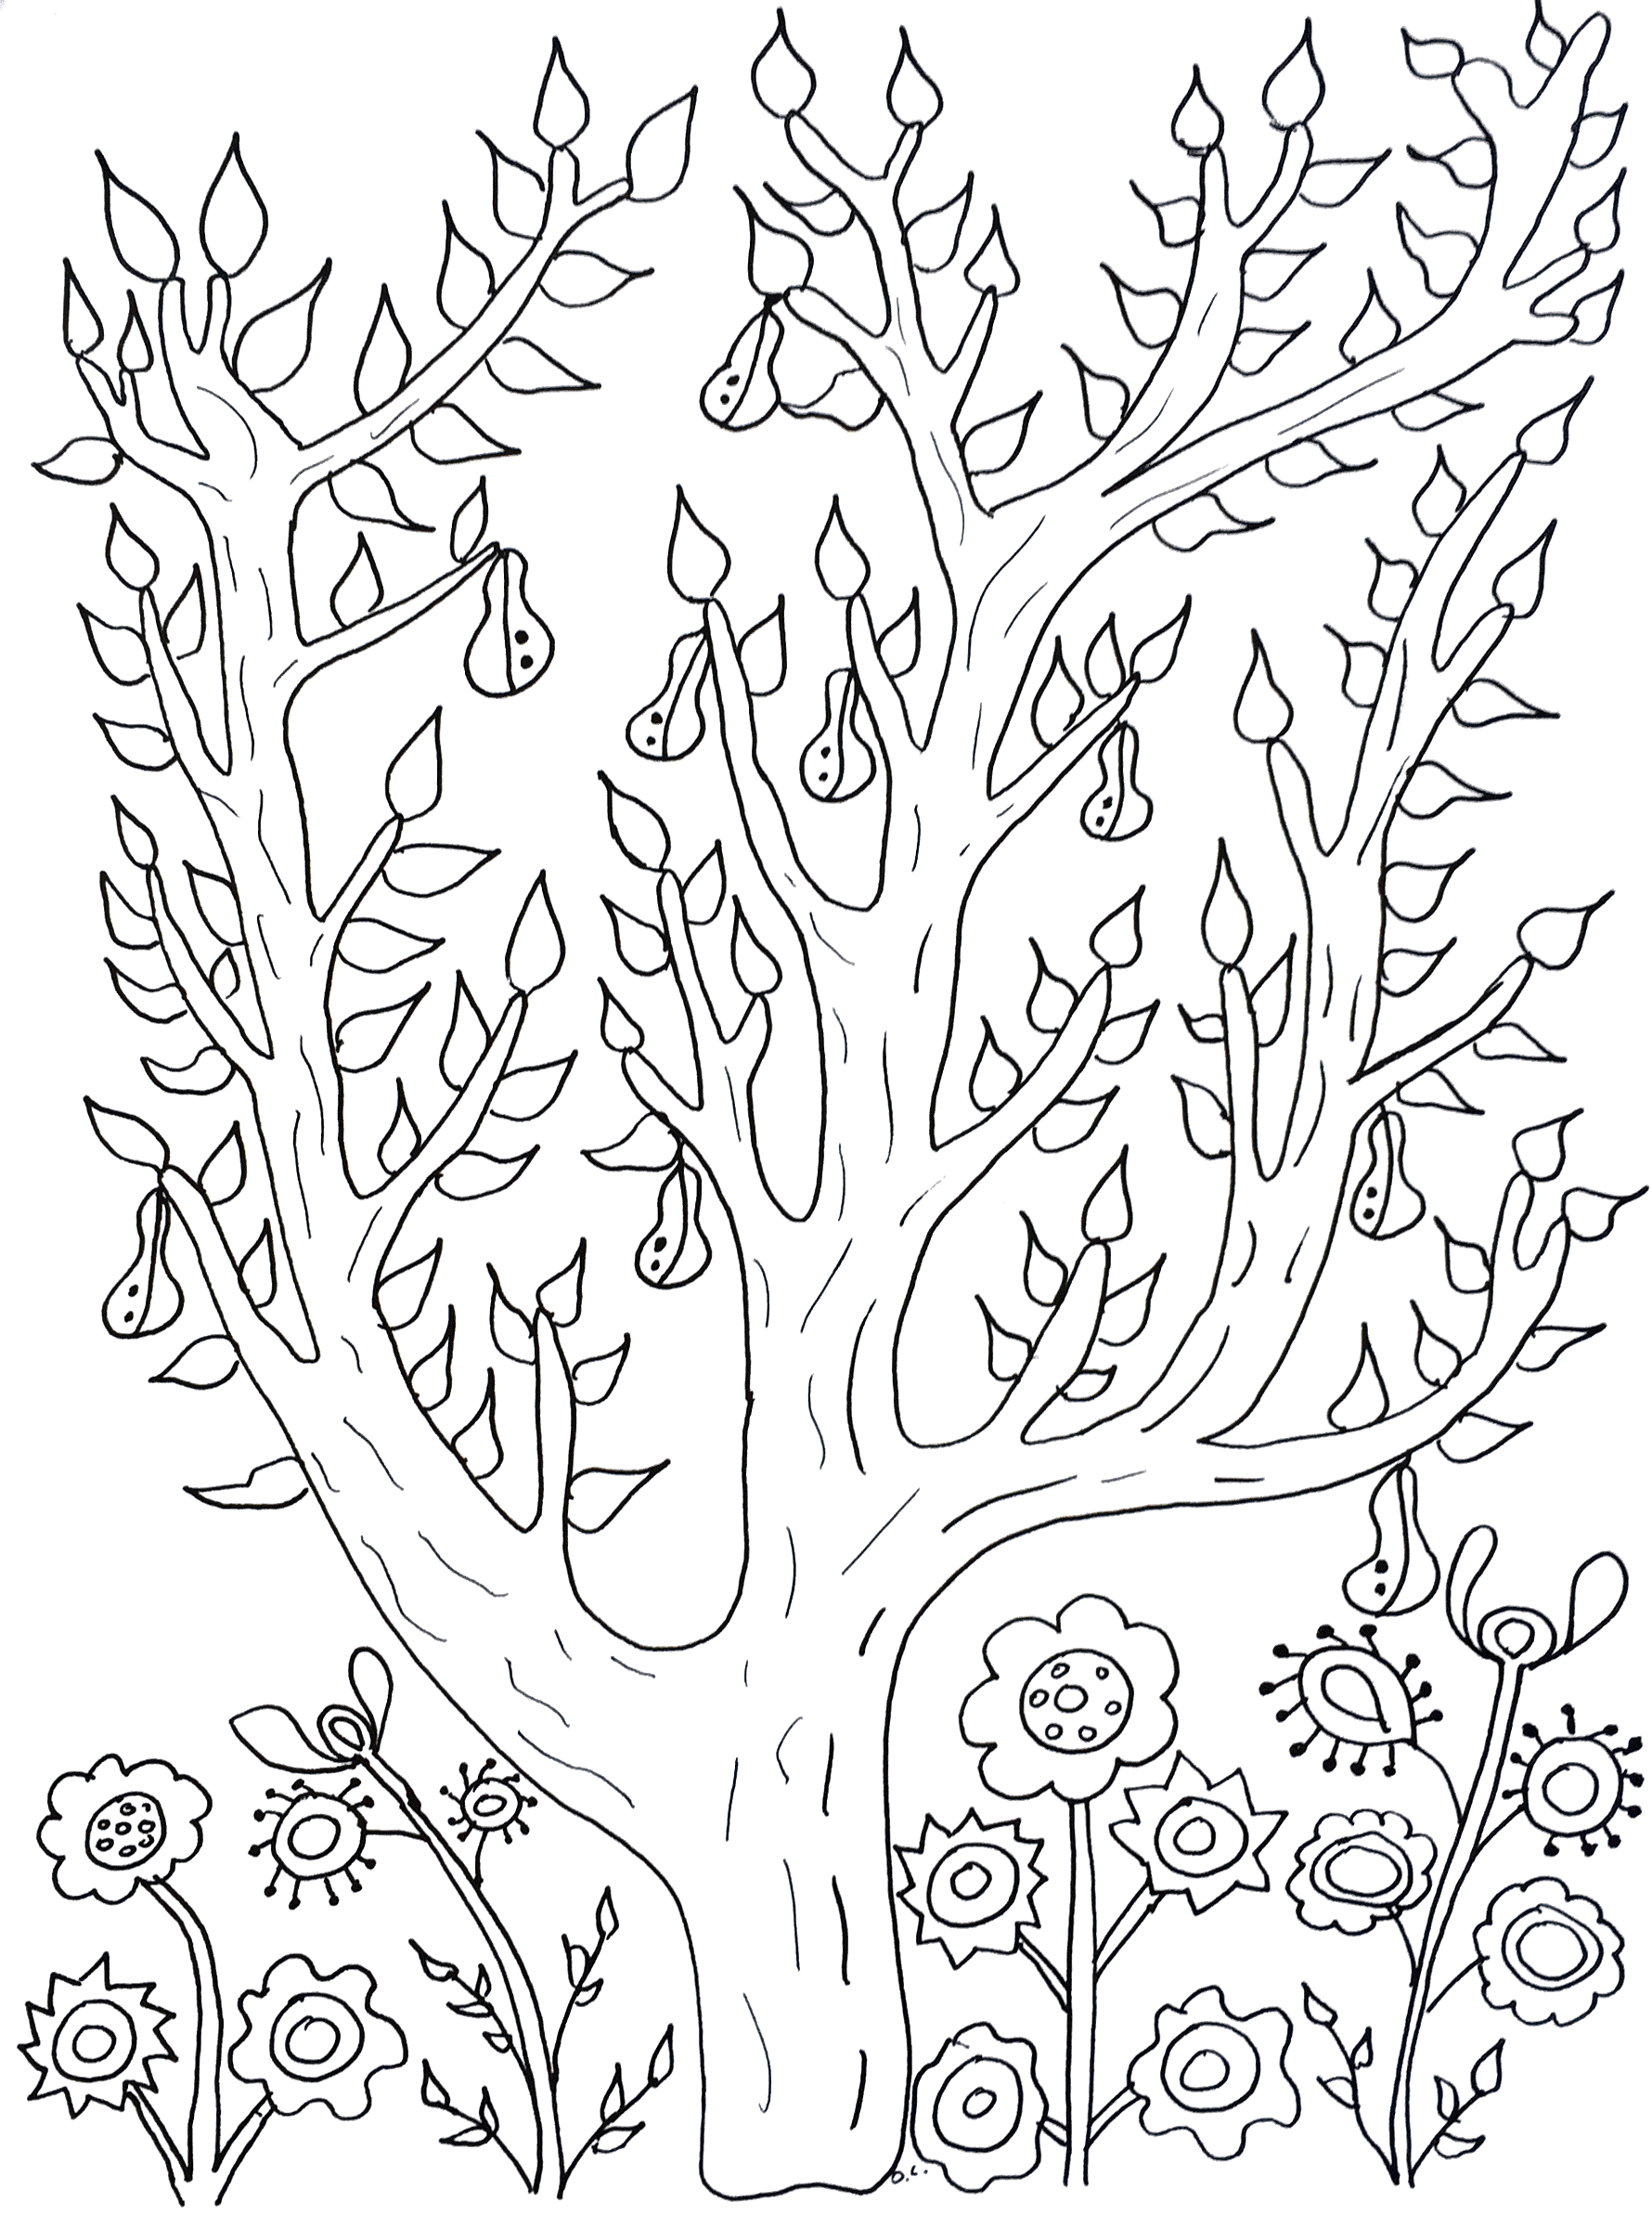 leaf coloring pages for adults - photo#30